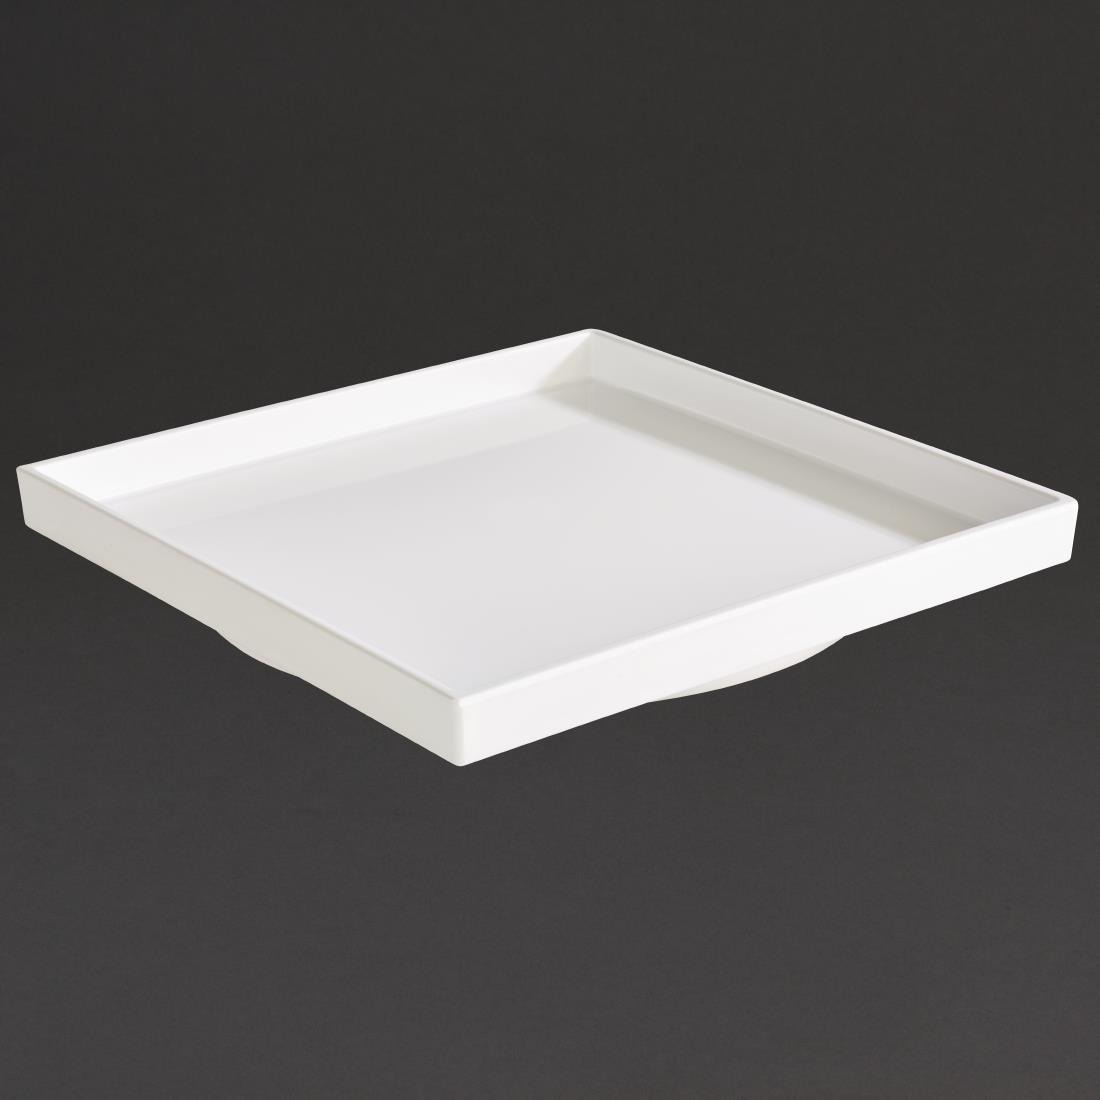 DW120 - APS Asia+ Square Bento Box White 230mm - Each - DW120